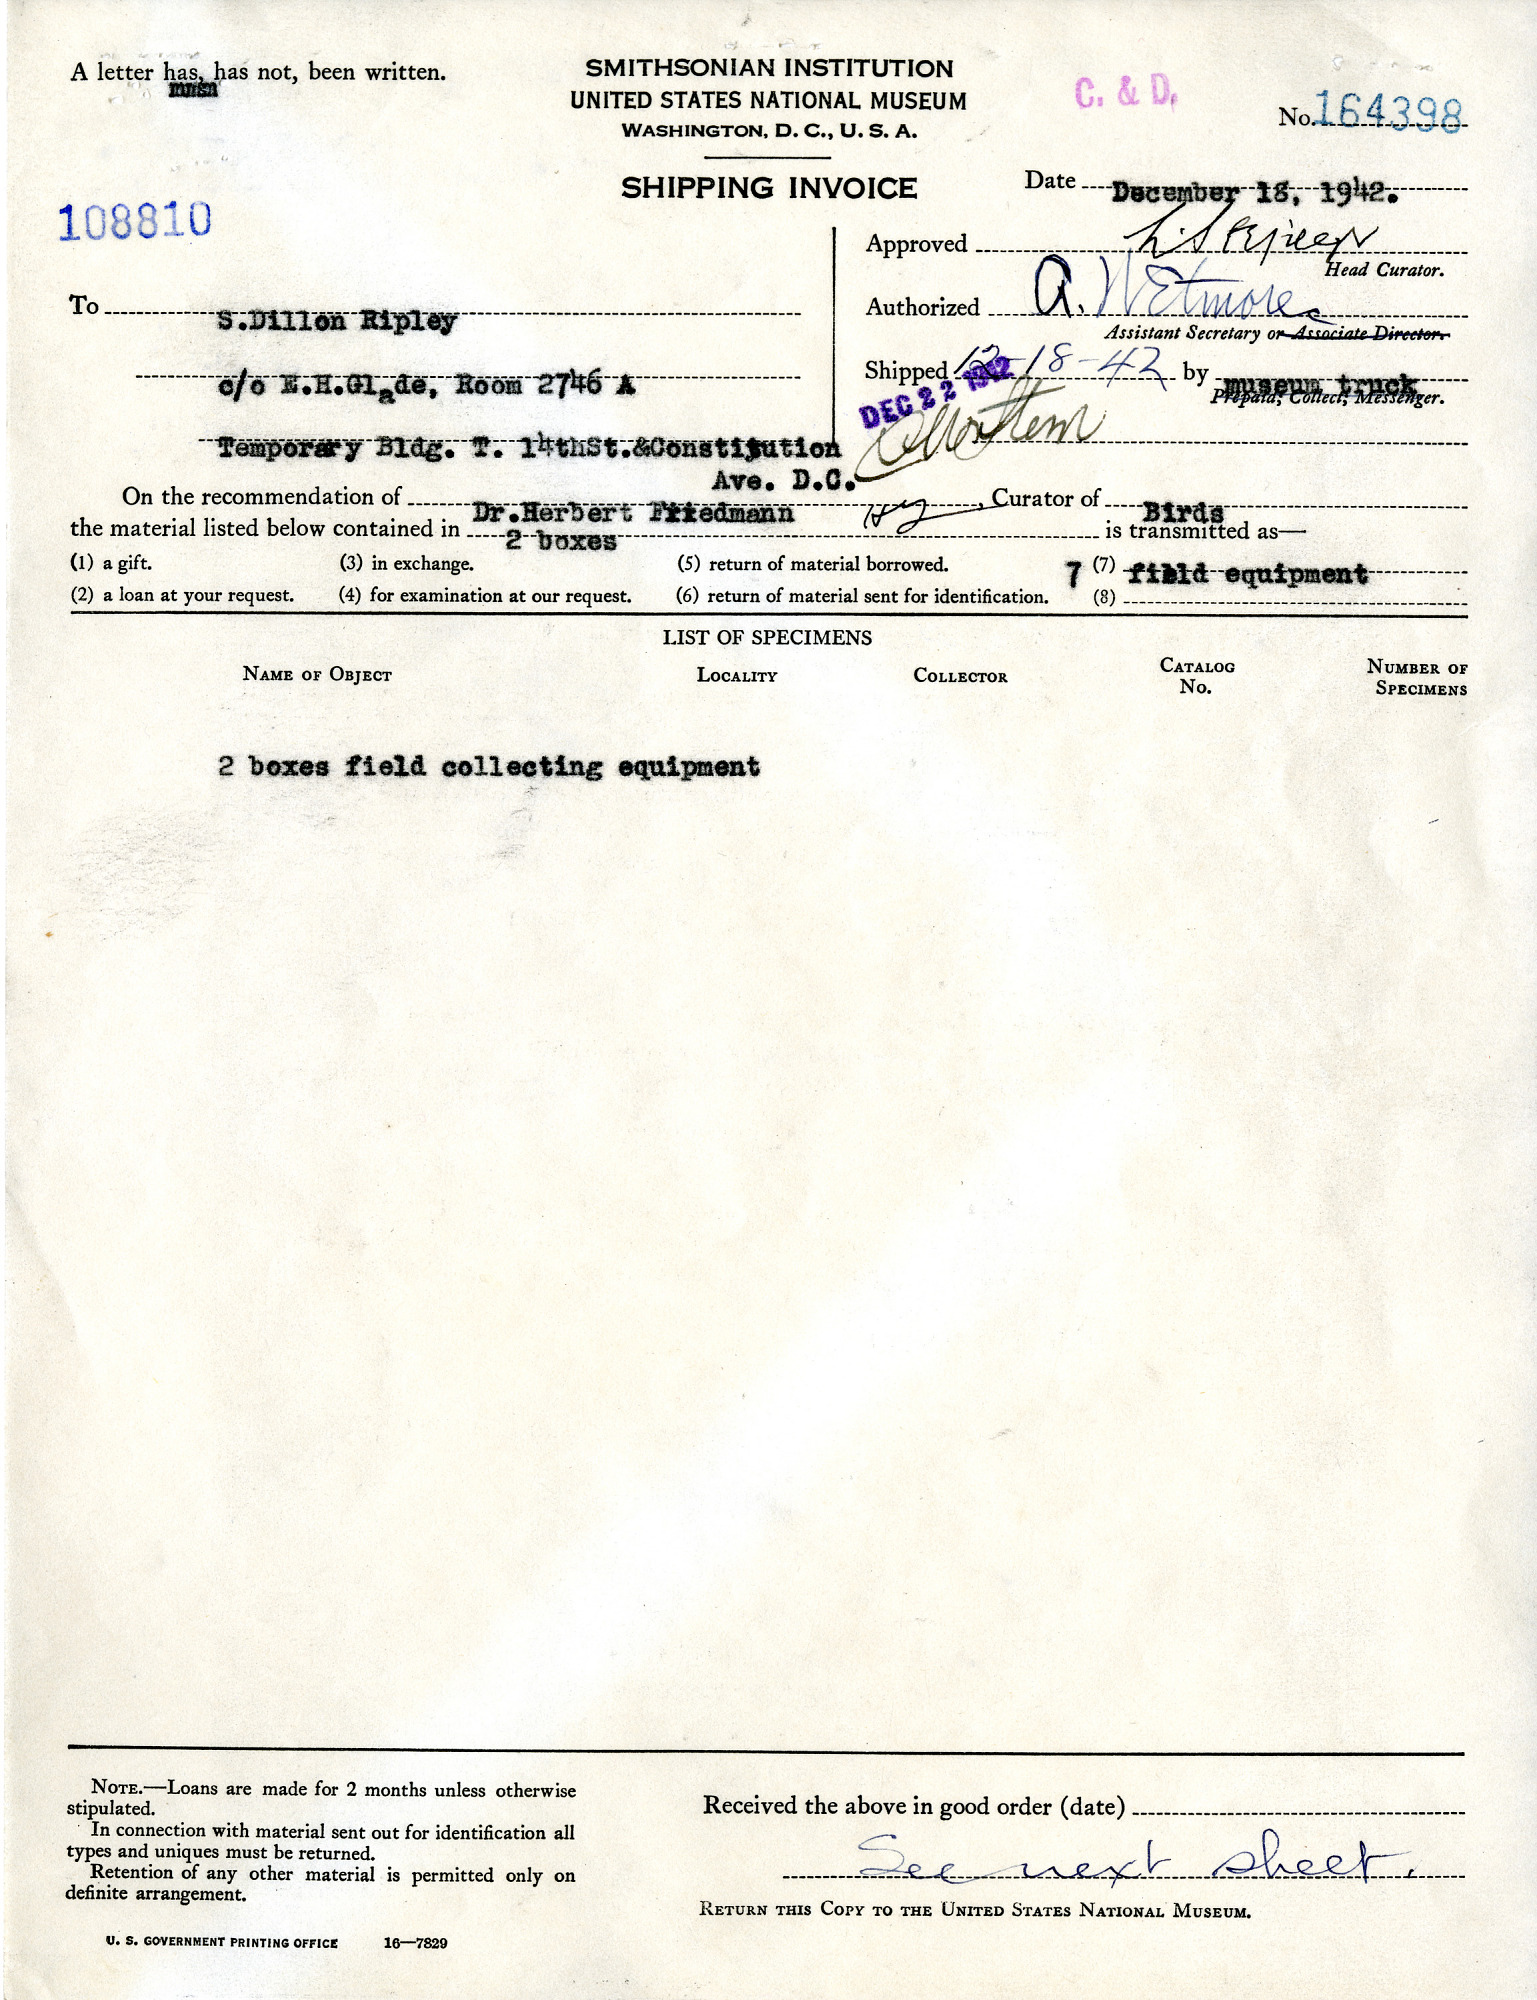 Shipping Invoice of Field Equipment for S. Dillon Ripley